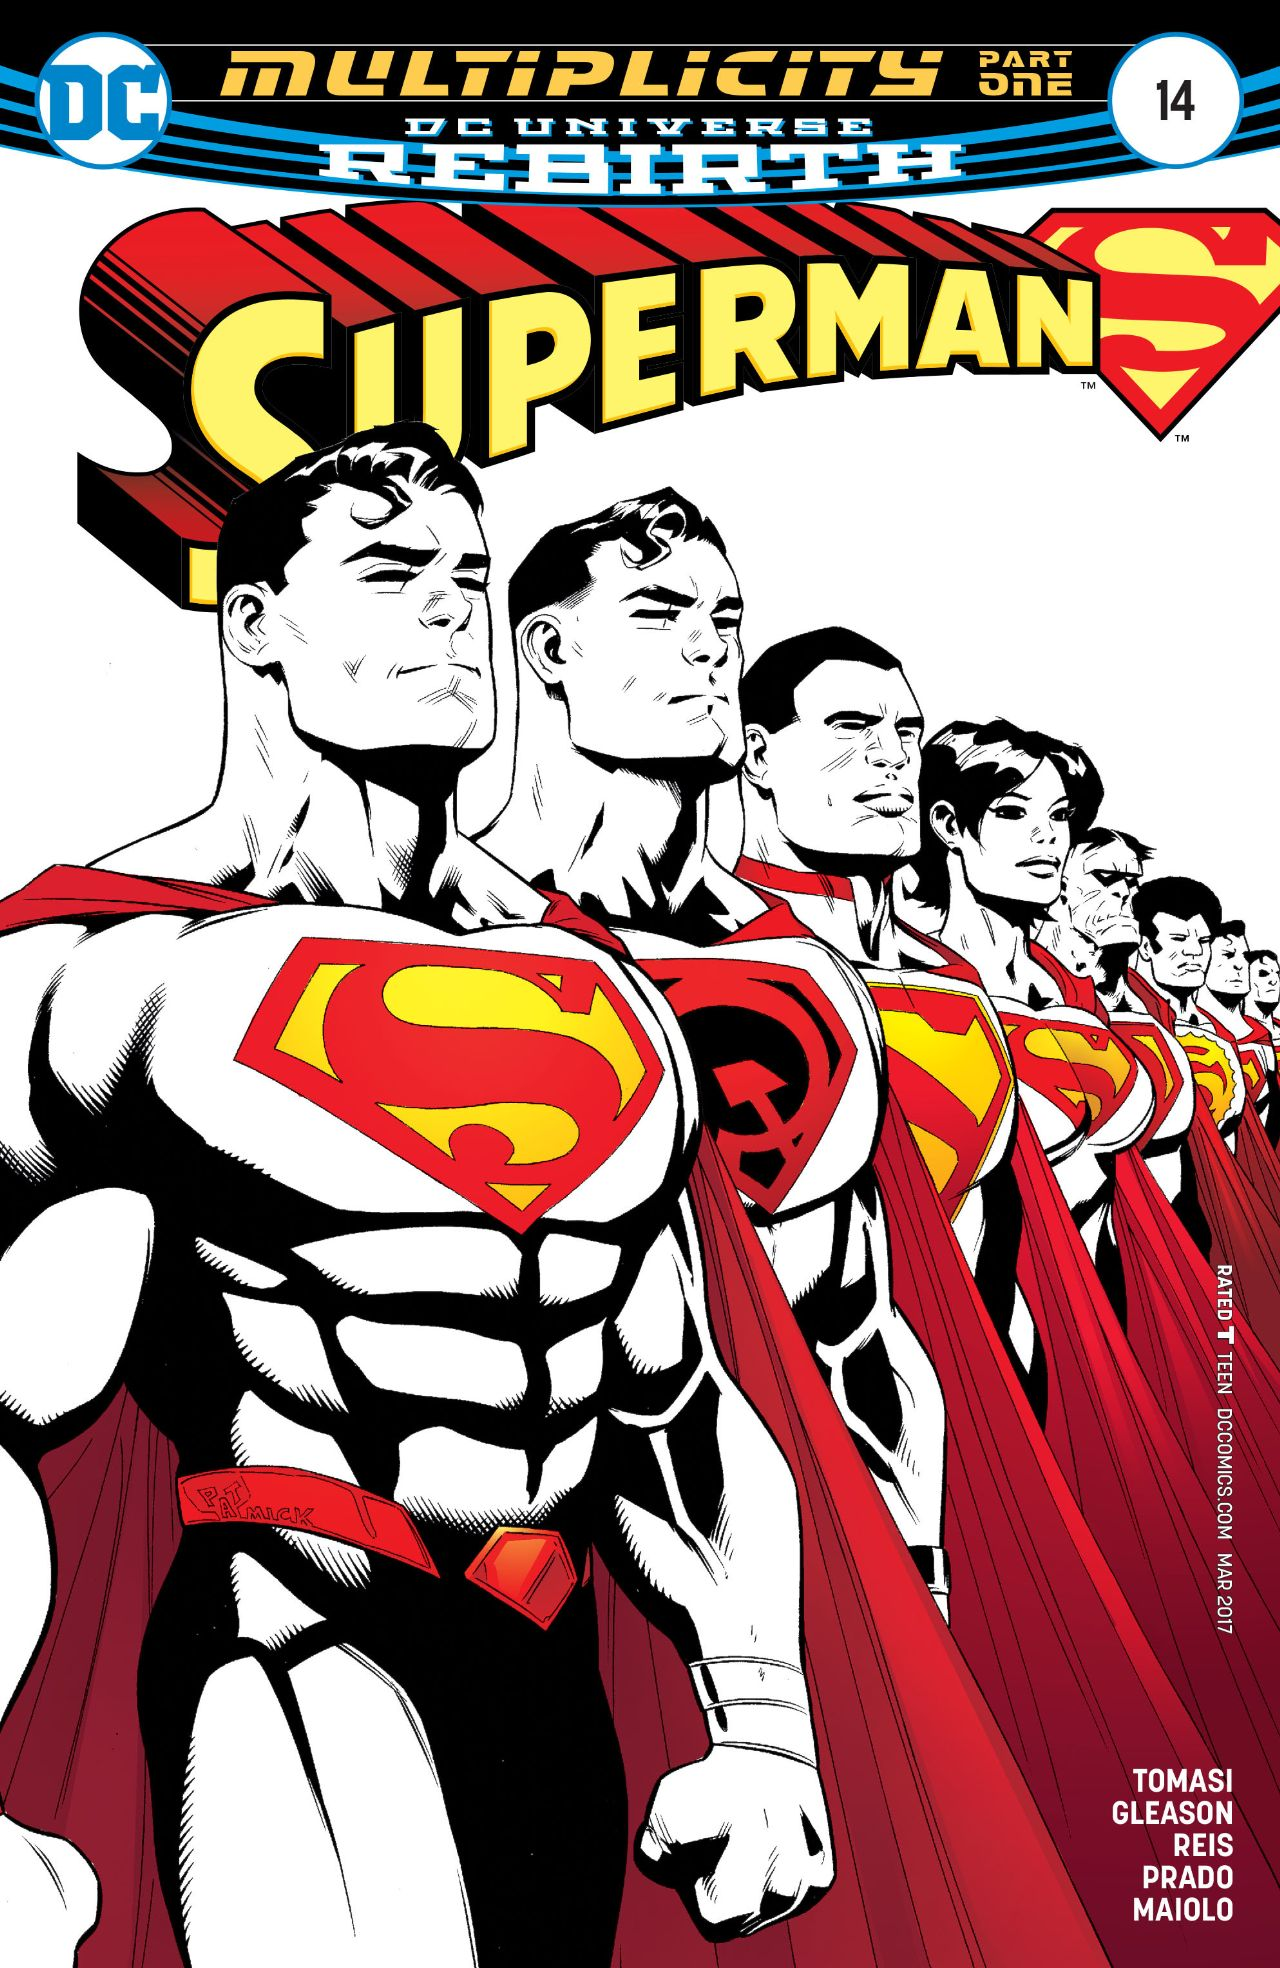 review SUPERMAN #14